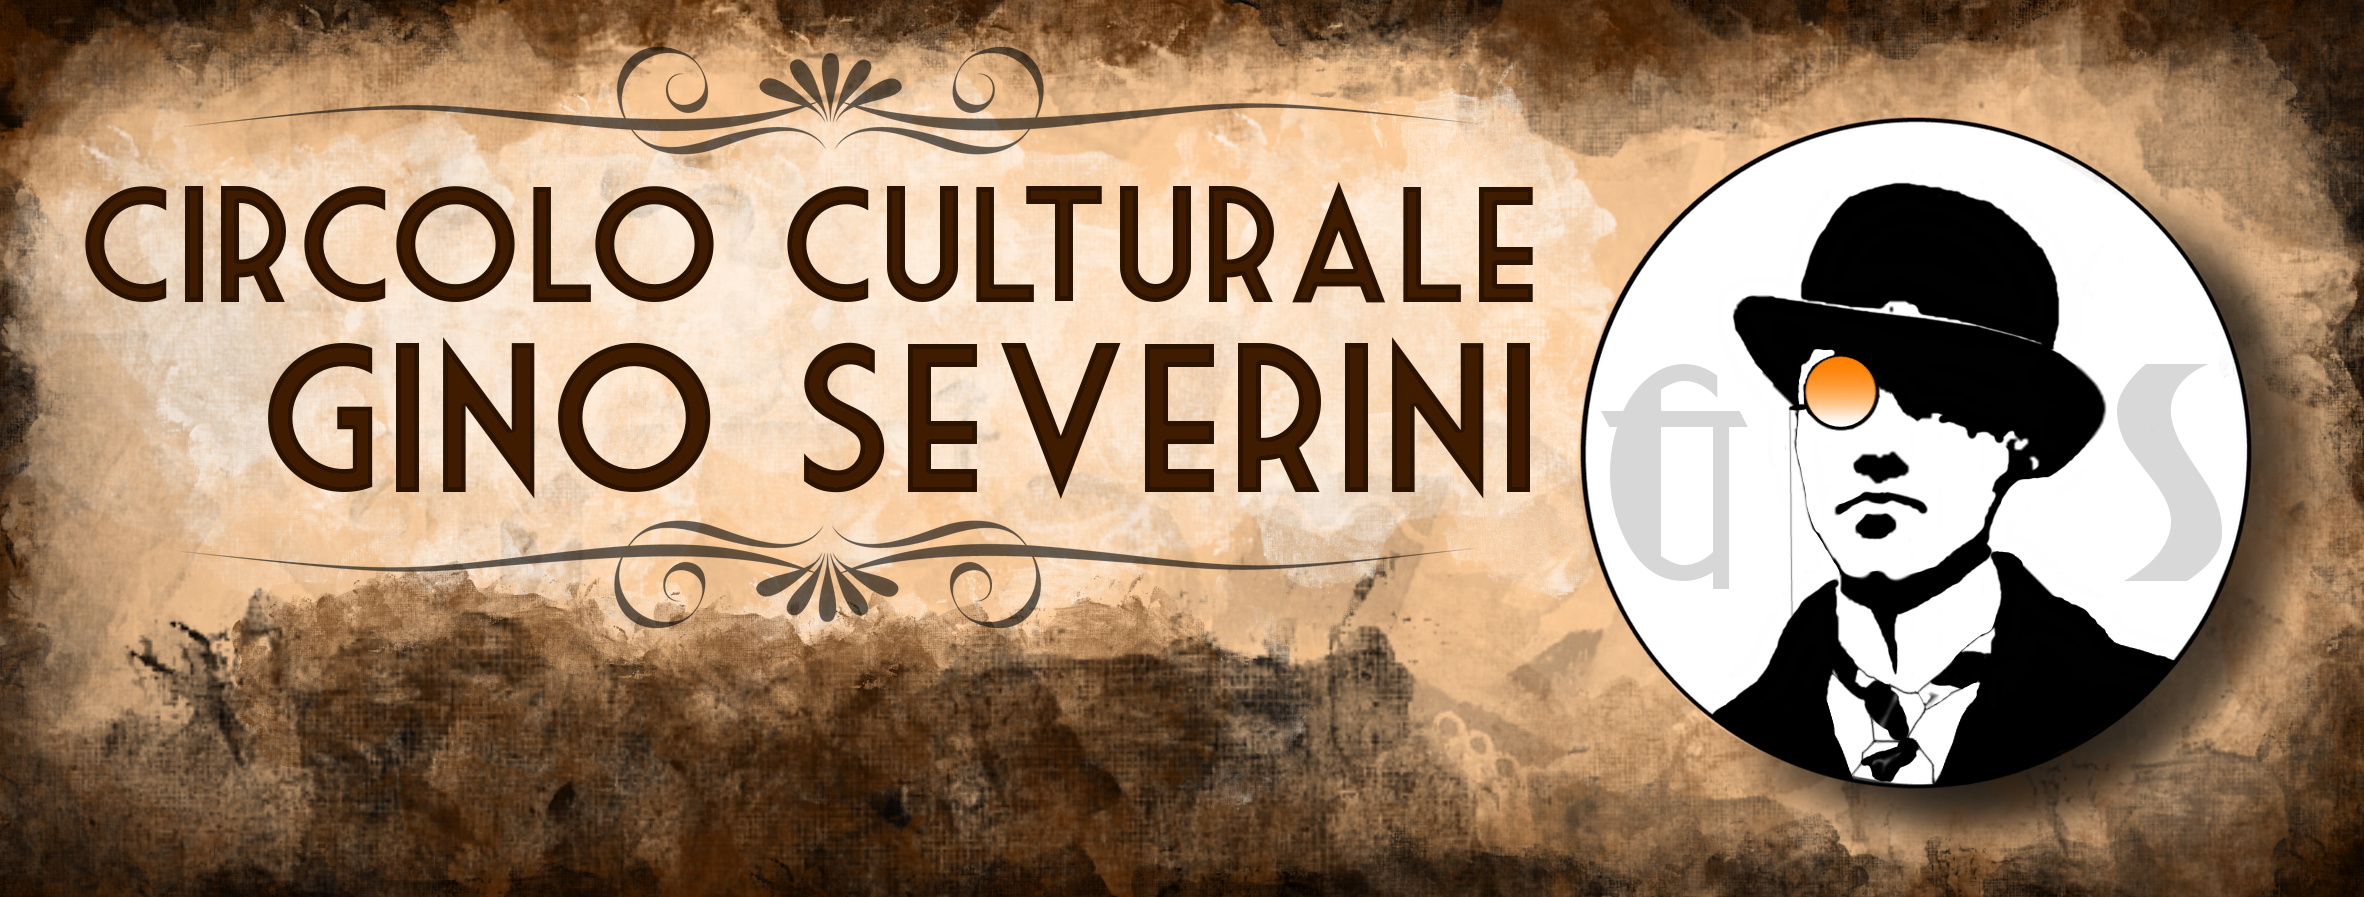 Facebook banner for the Circolo Culturale Gino Severini, Cortona, Italy